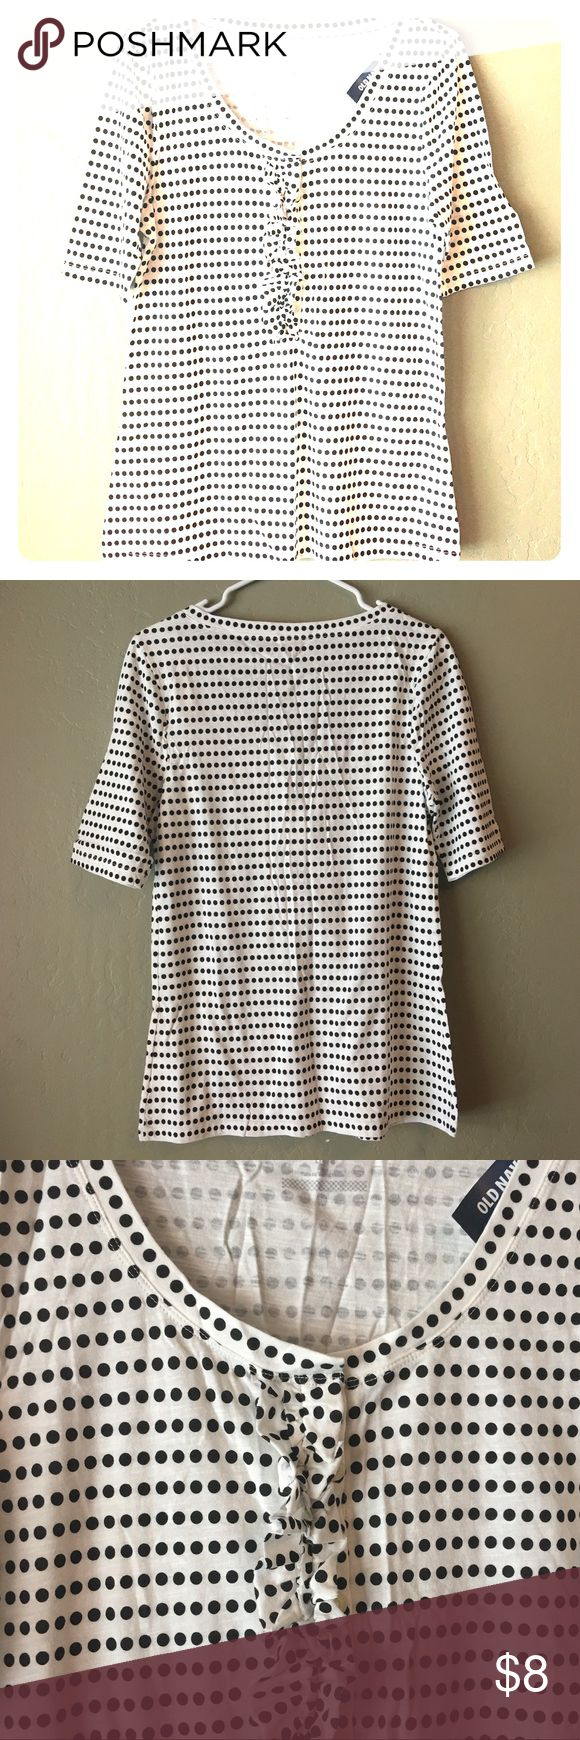 NWT Old Navy White/Black Polka Dot Tee T Shirt New with tags classic styled white w/ black polka dots three-quarter sleeve Old Navy T-shirt. Women's size Large. Ruffle detail down front buttons. See photos for fabric blend. Thanks for looking! Old Navy Tops Tees - Short Sleeve